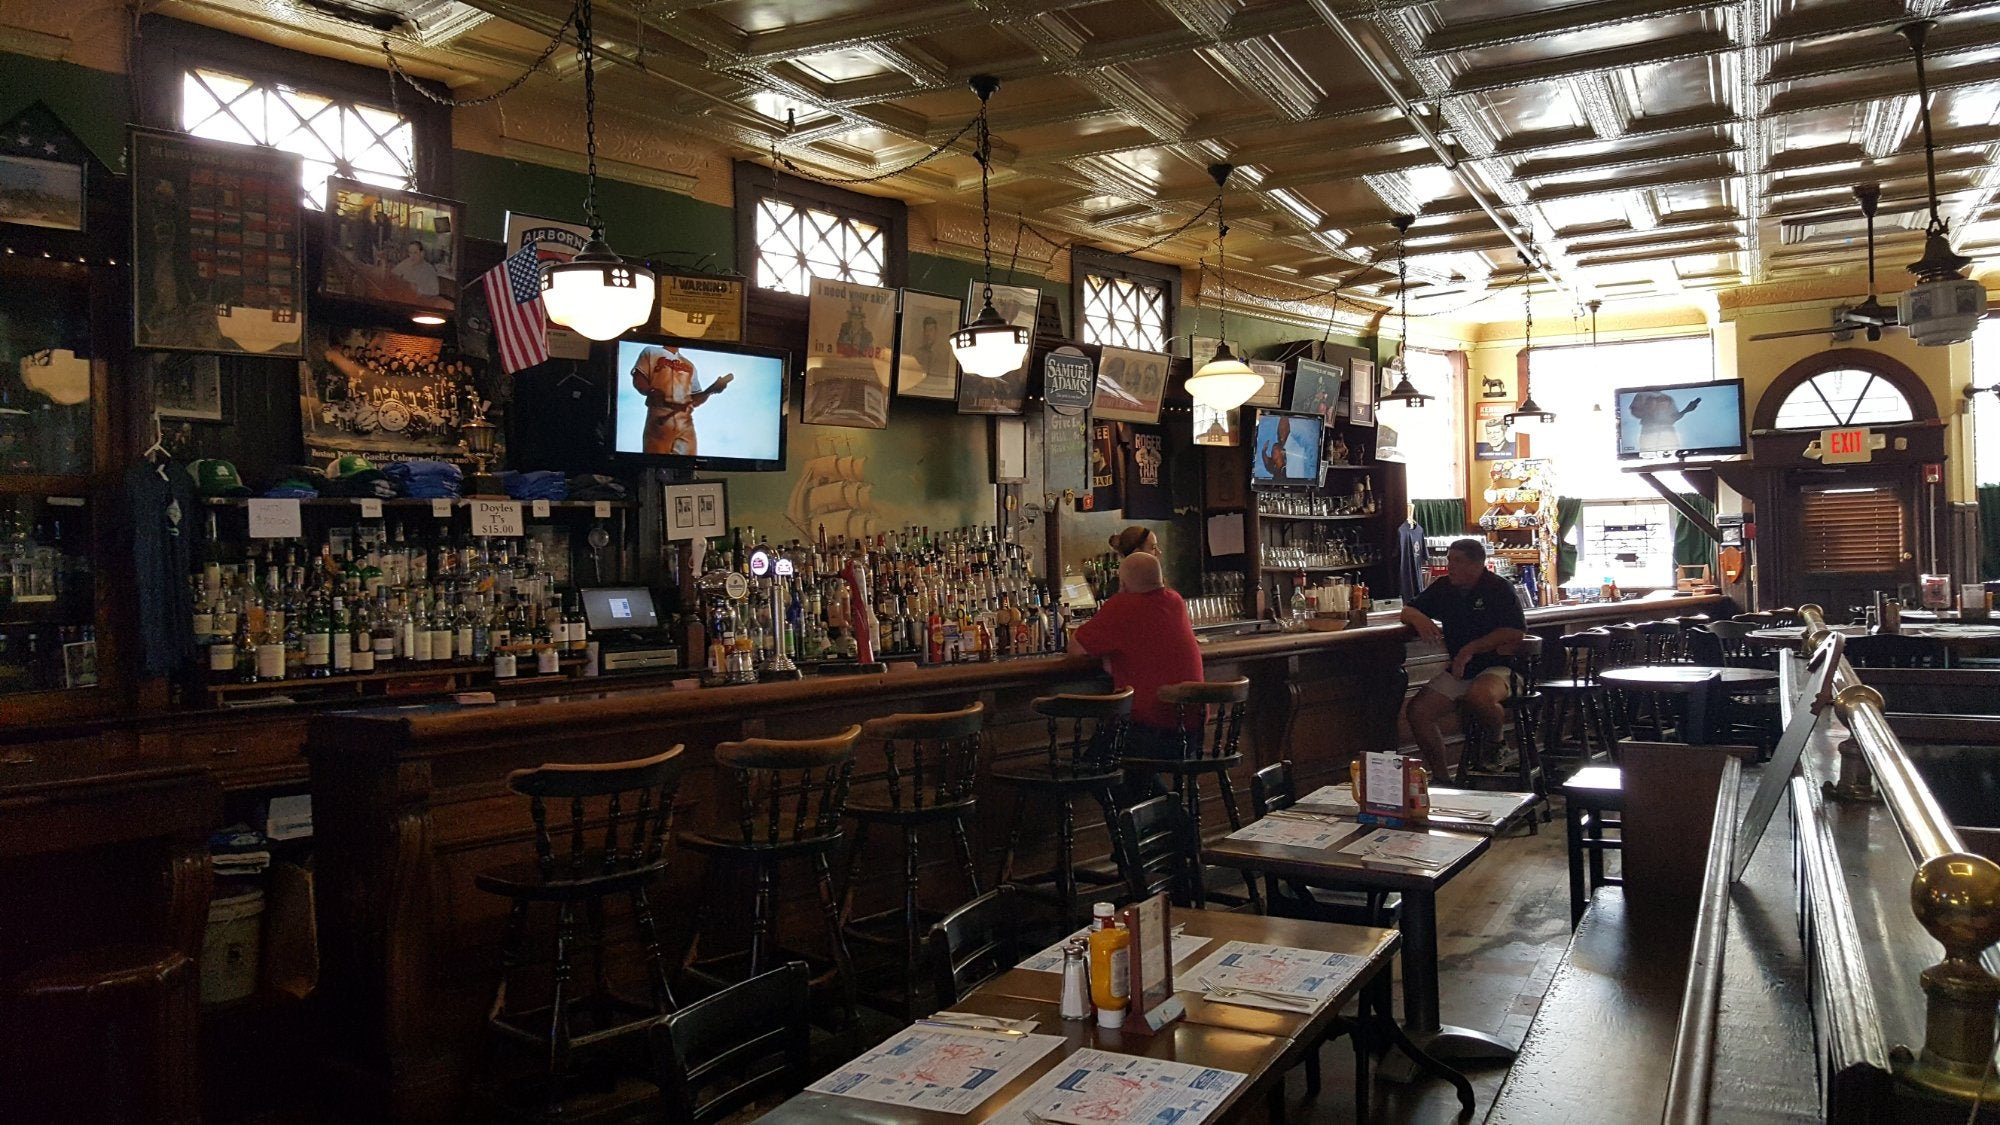 The inside of Doyle's Cafe in Boston.